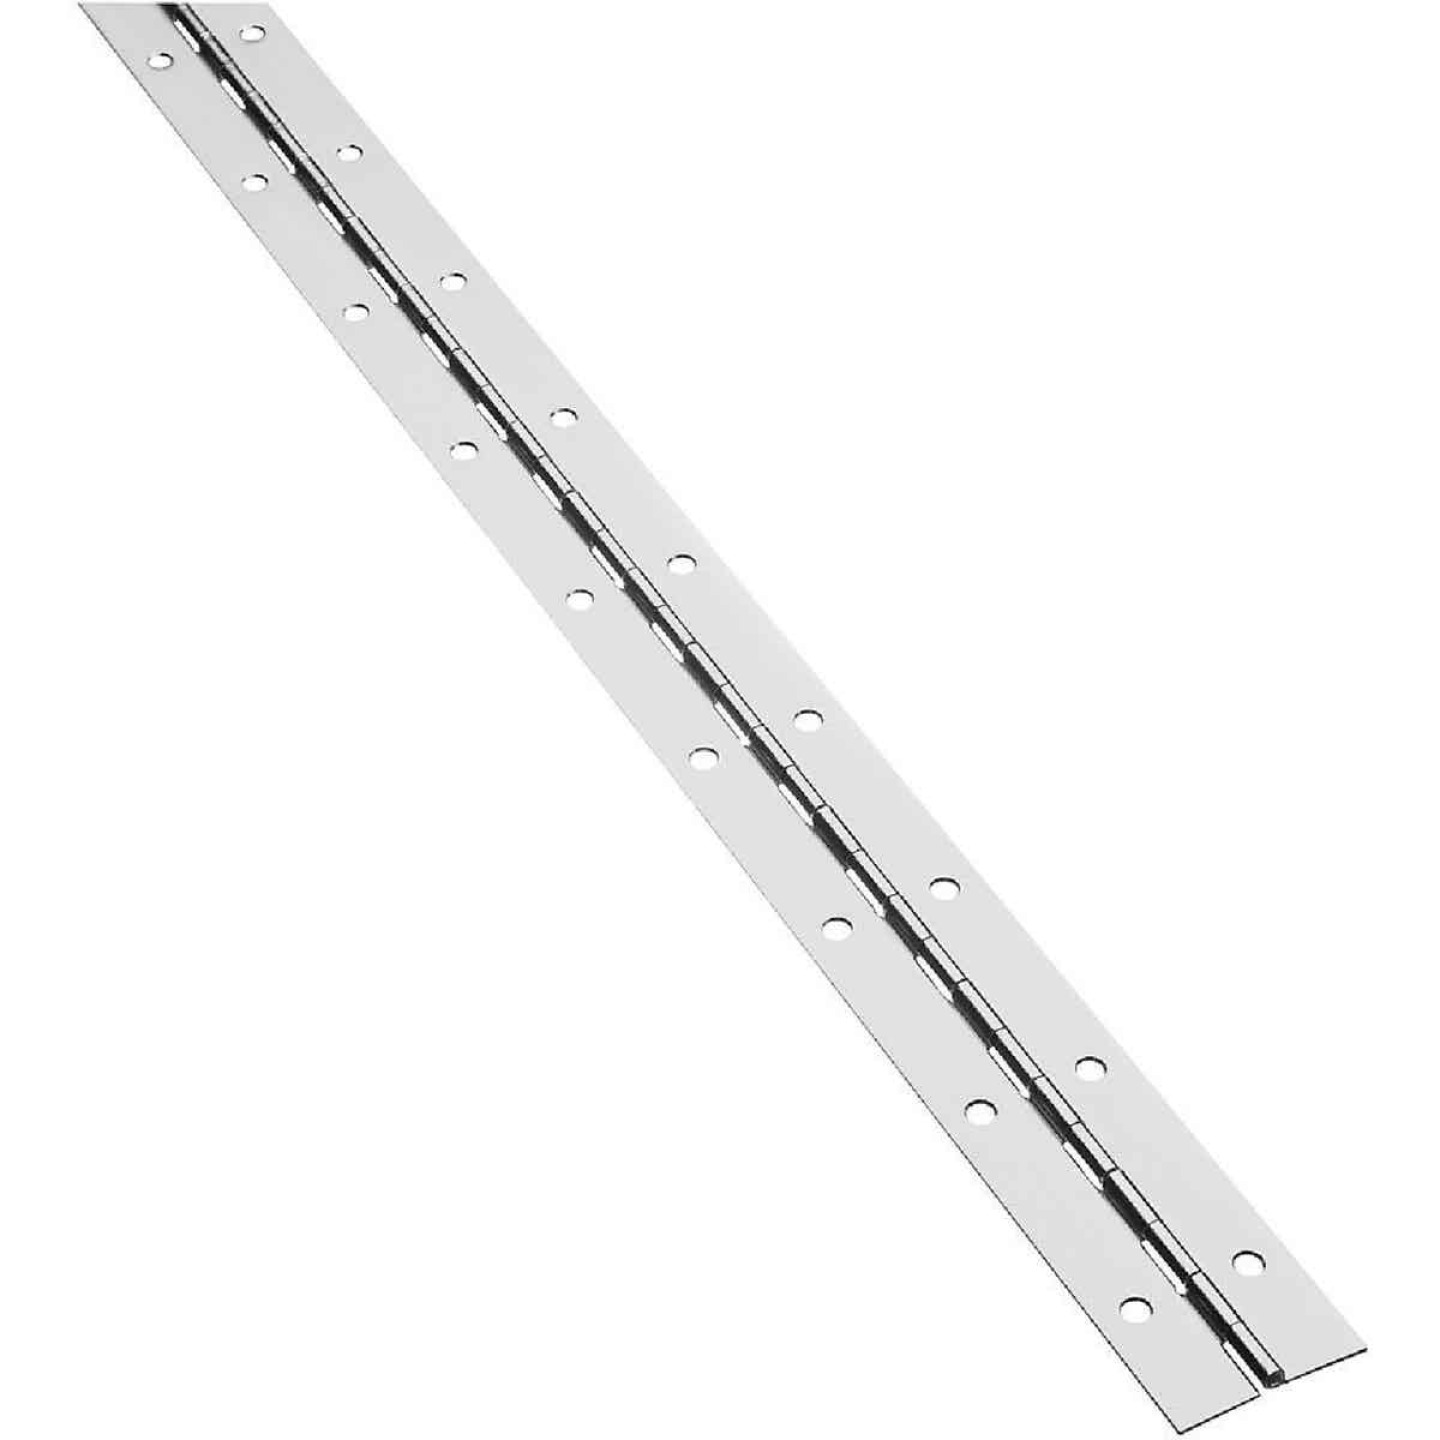 National Steel 1-1/2 In. x 48 In. Nickel Continuous Hinge Image 1